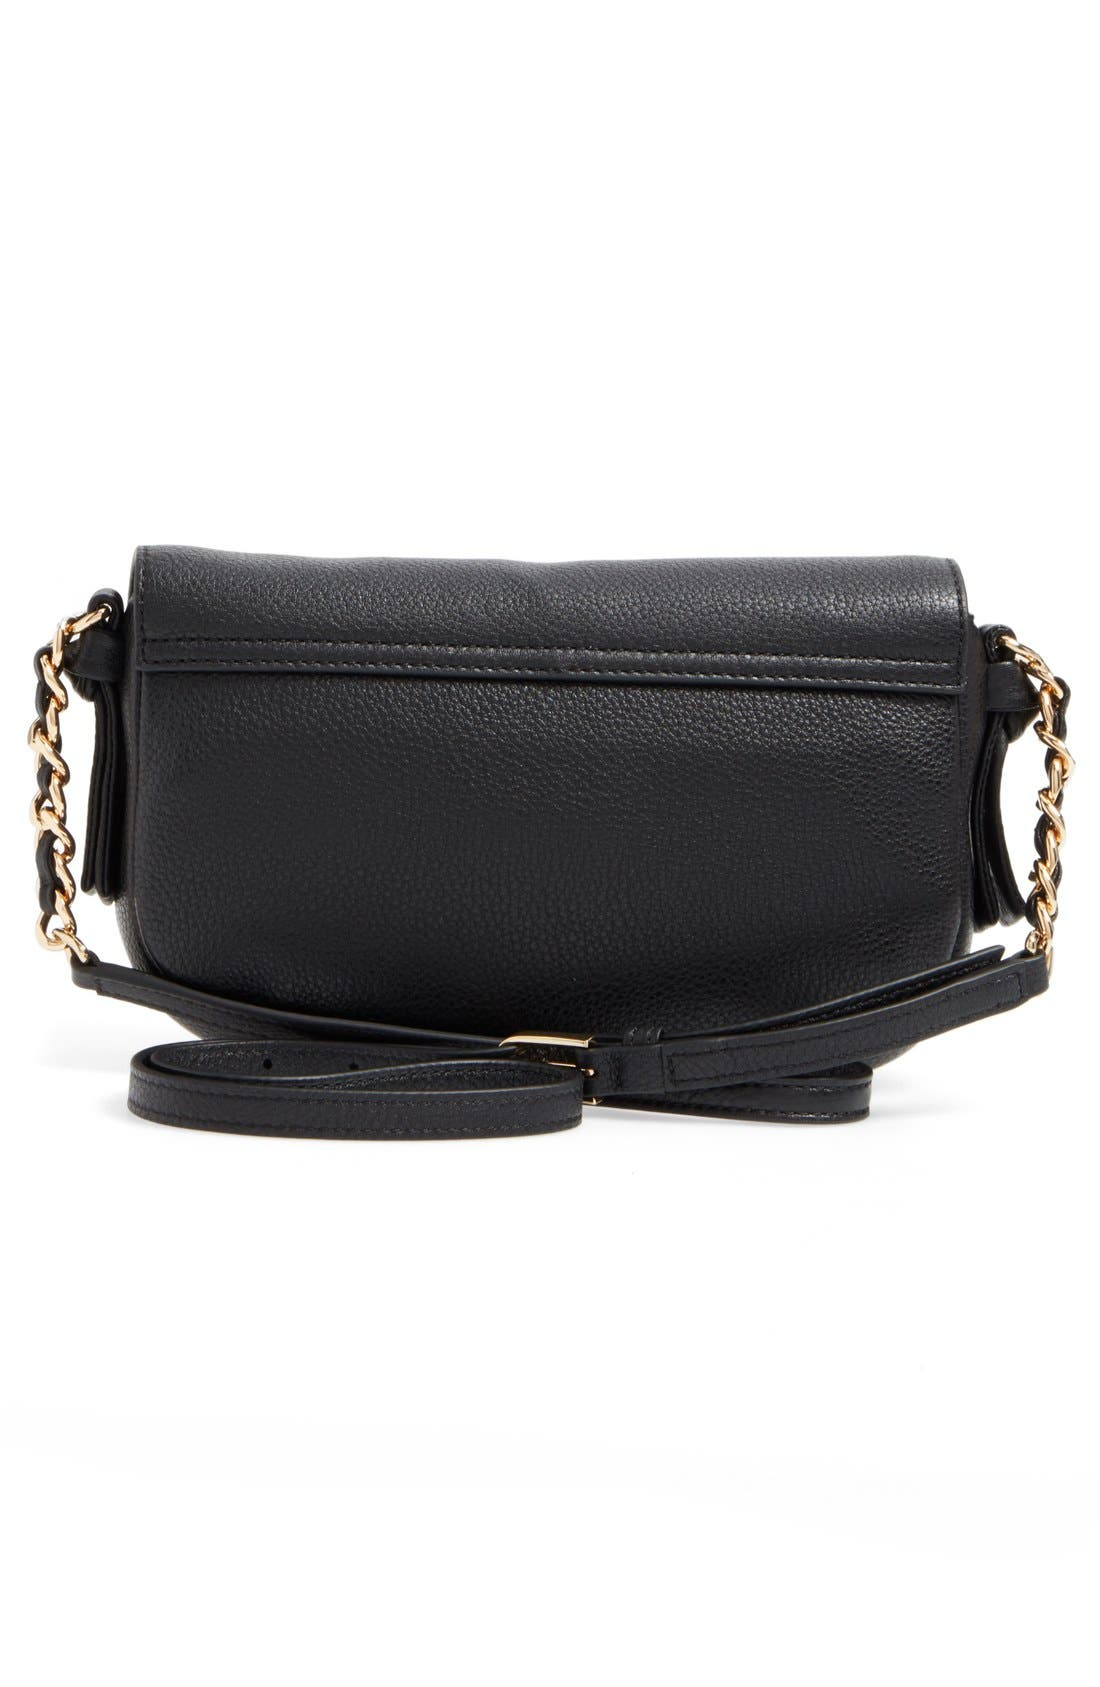 Mini Harper Leather Crossbody Bag,                             Alternate thumbnail 5, color,                             001